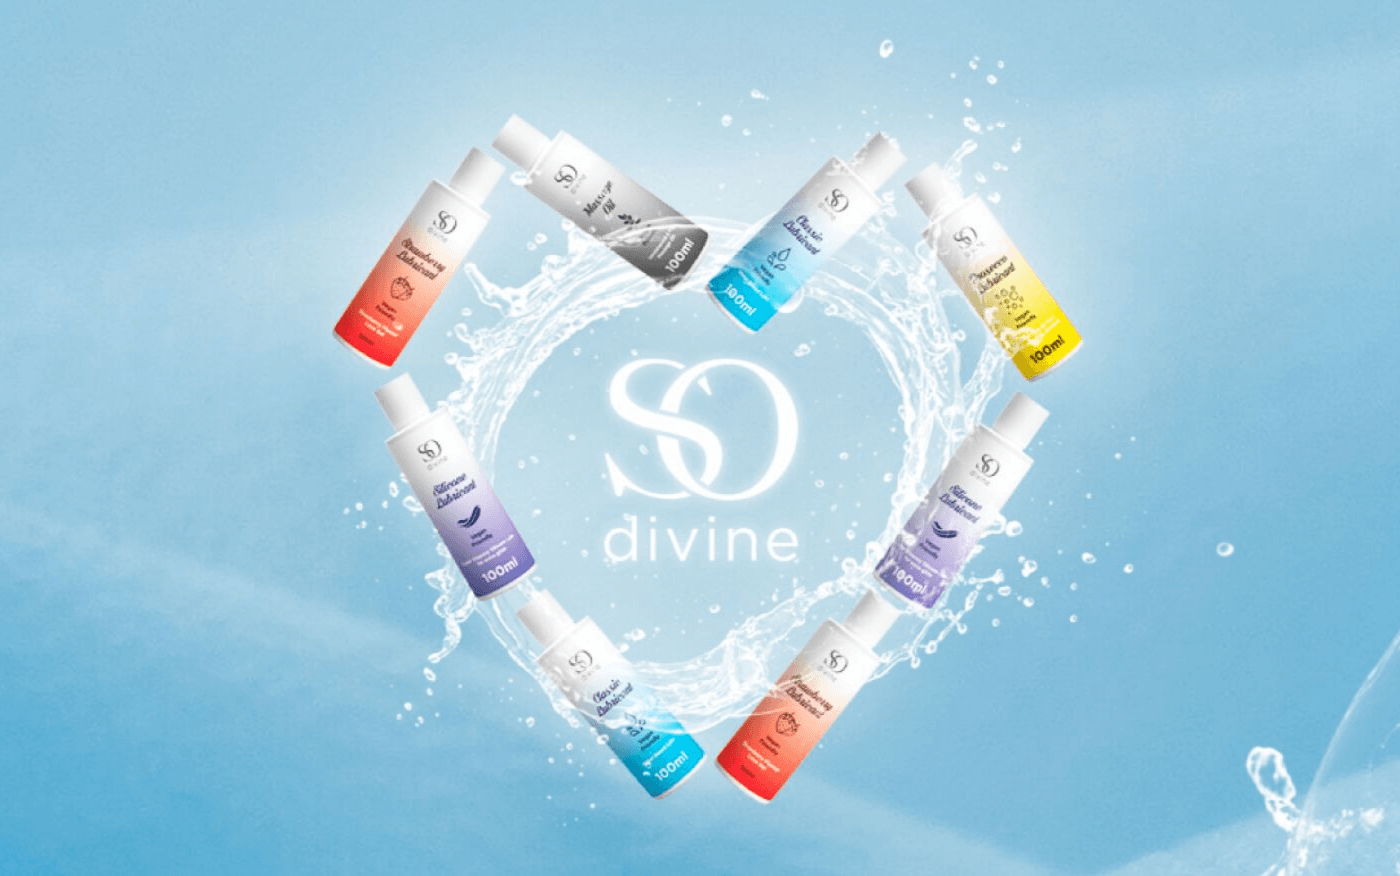 The So Divine Lube Range